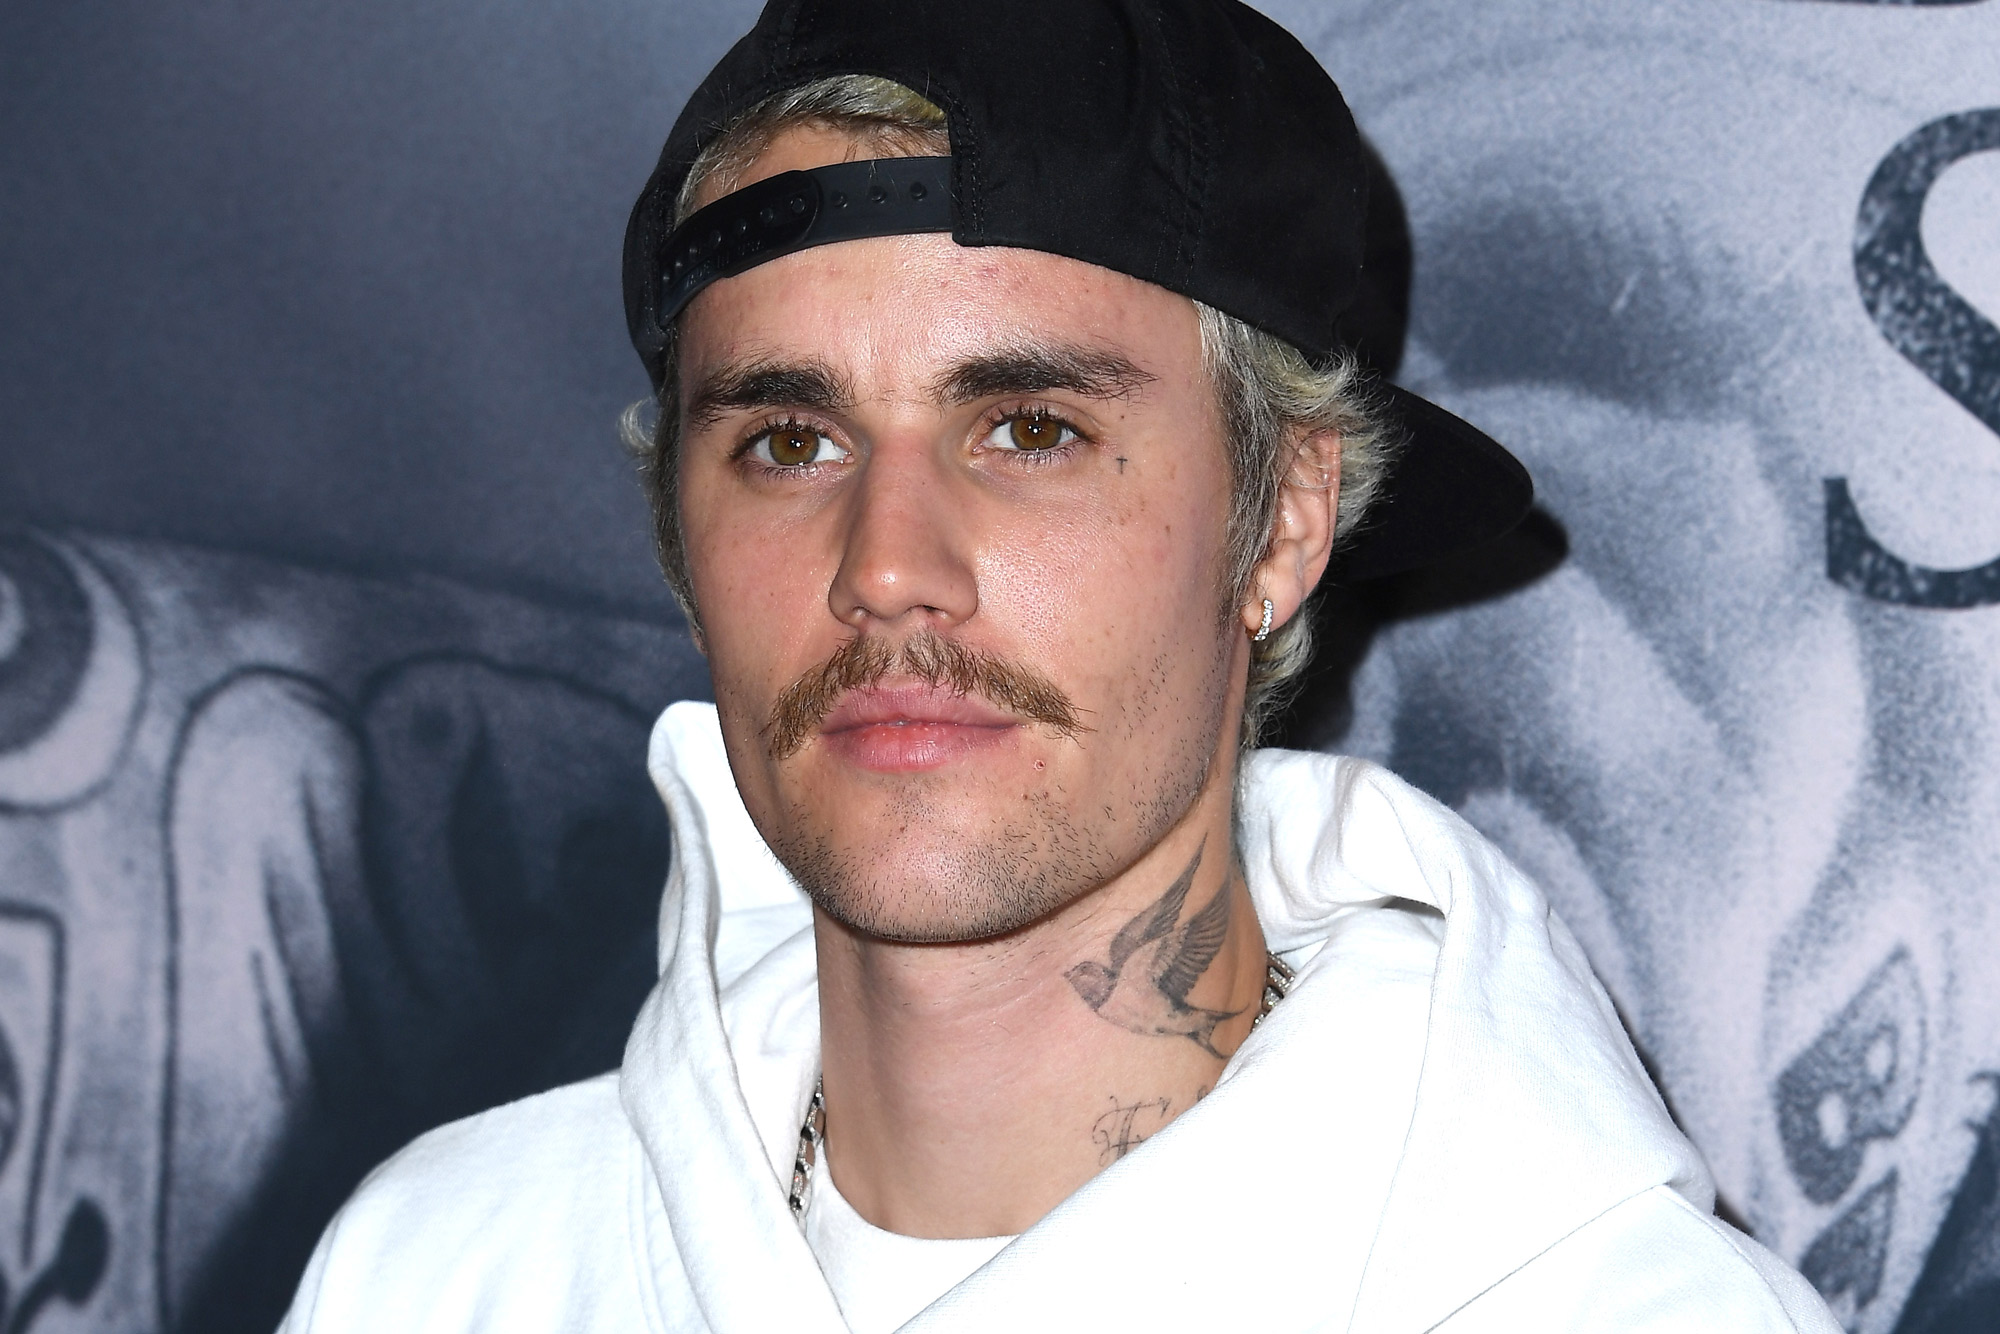 Justin Bieber shows off giant new neck tattoo